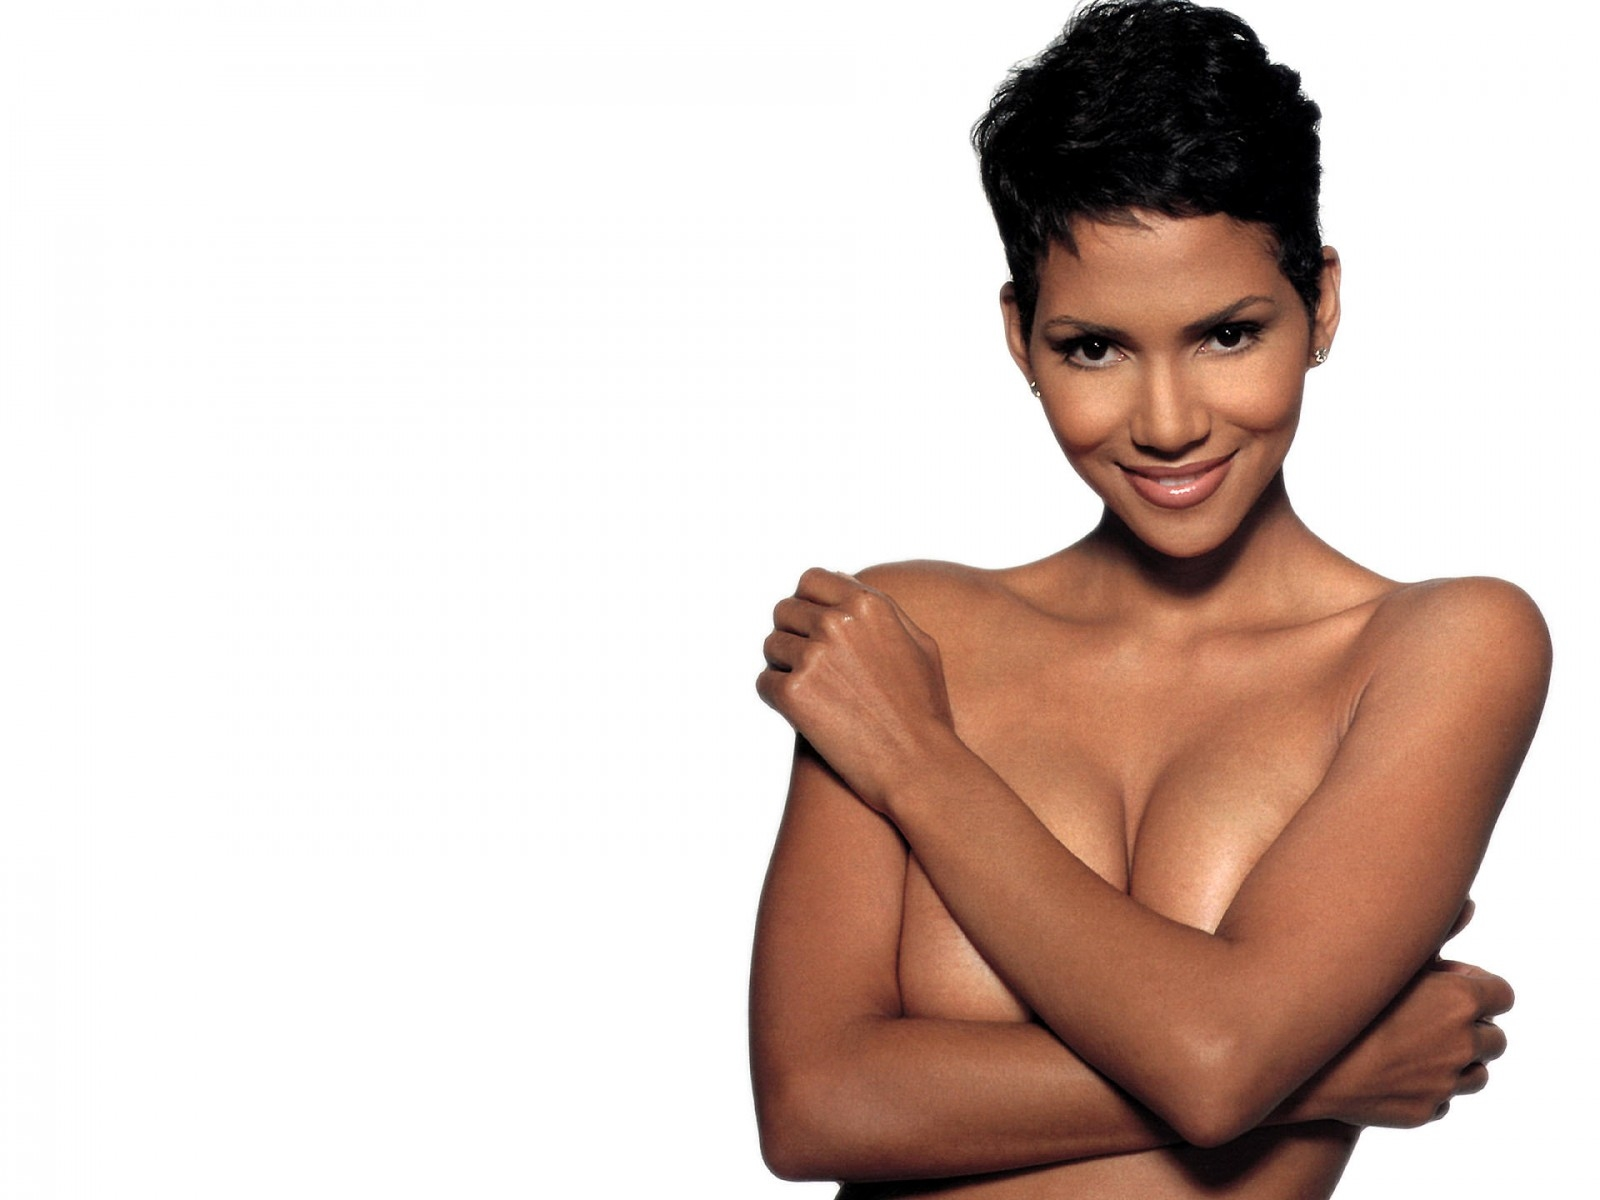 Wallpaper: una maliziosa Halle Berry